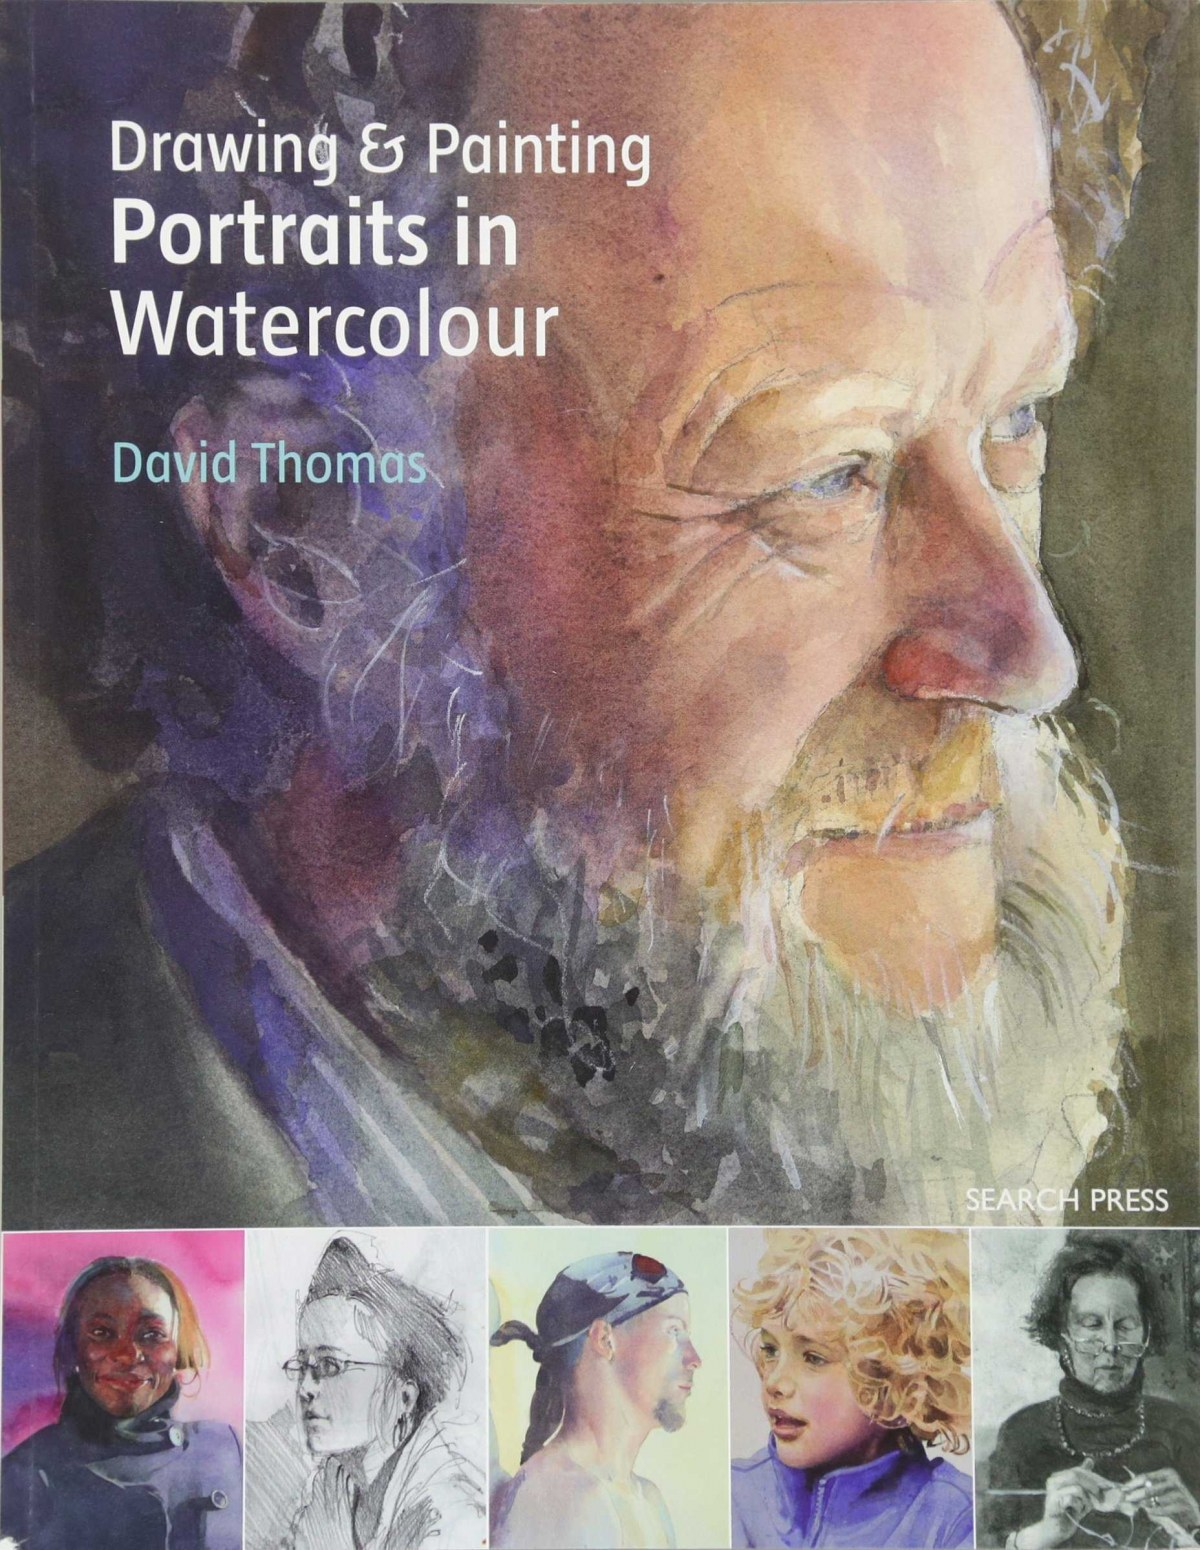 DRAWING AND PAINTING PORTRAITS IN WATERCOLOUR